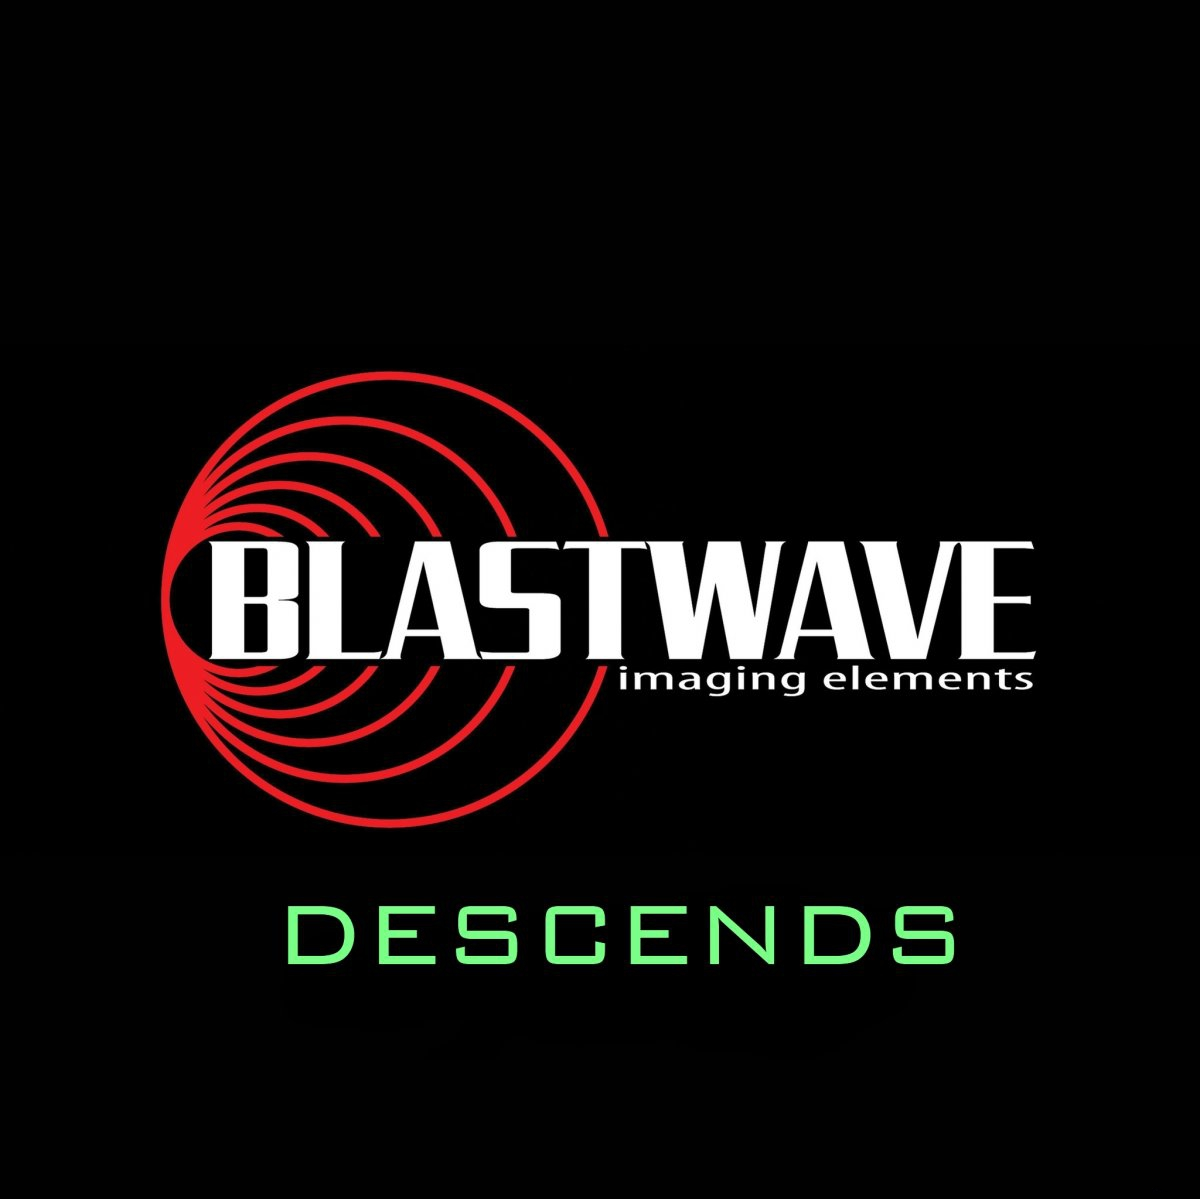 Blastwave Imaging Elements Descends ACID WAV